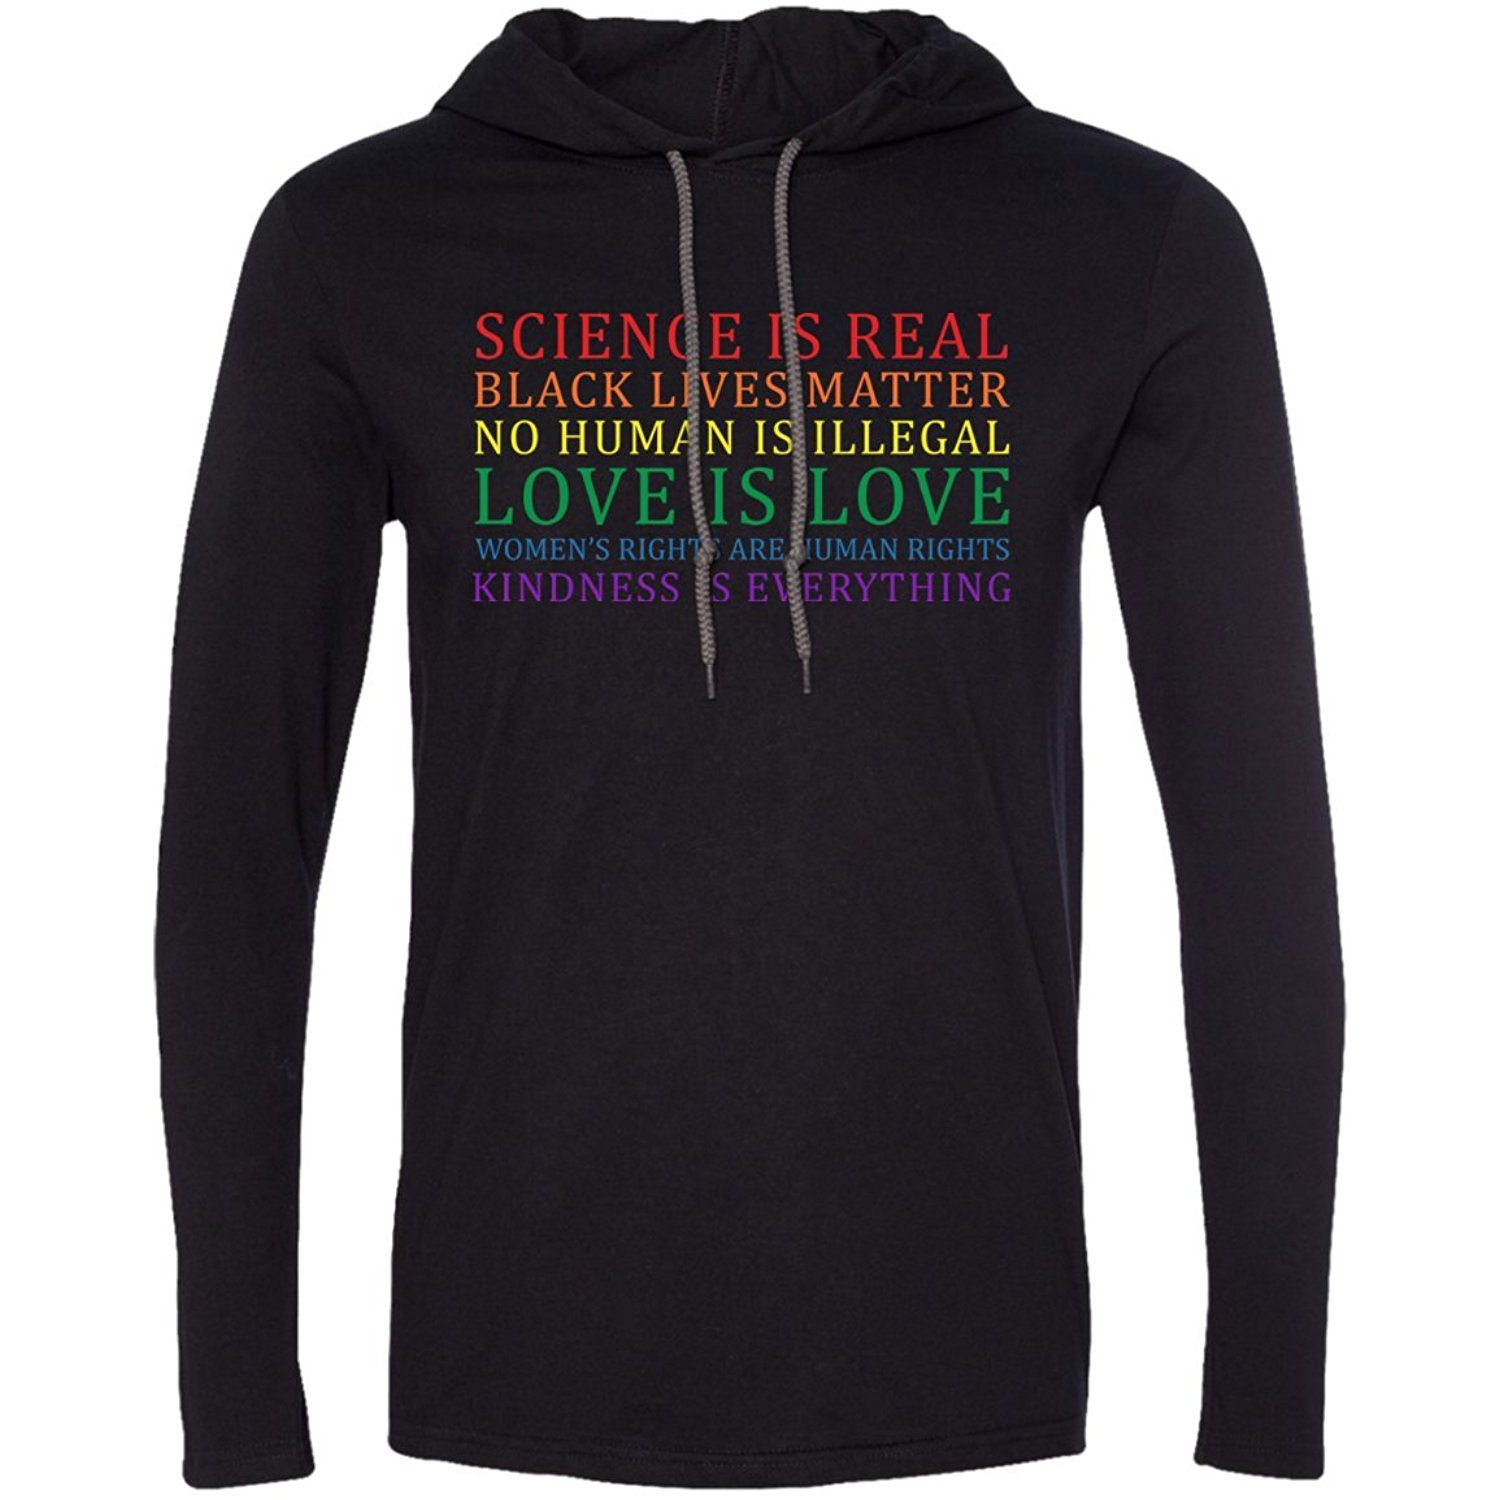 Science is real Black lives matter tshirt hoodie